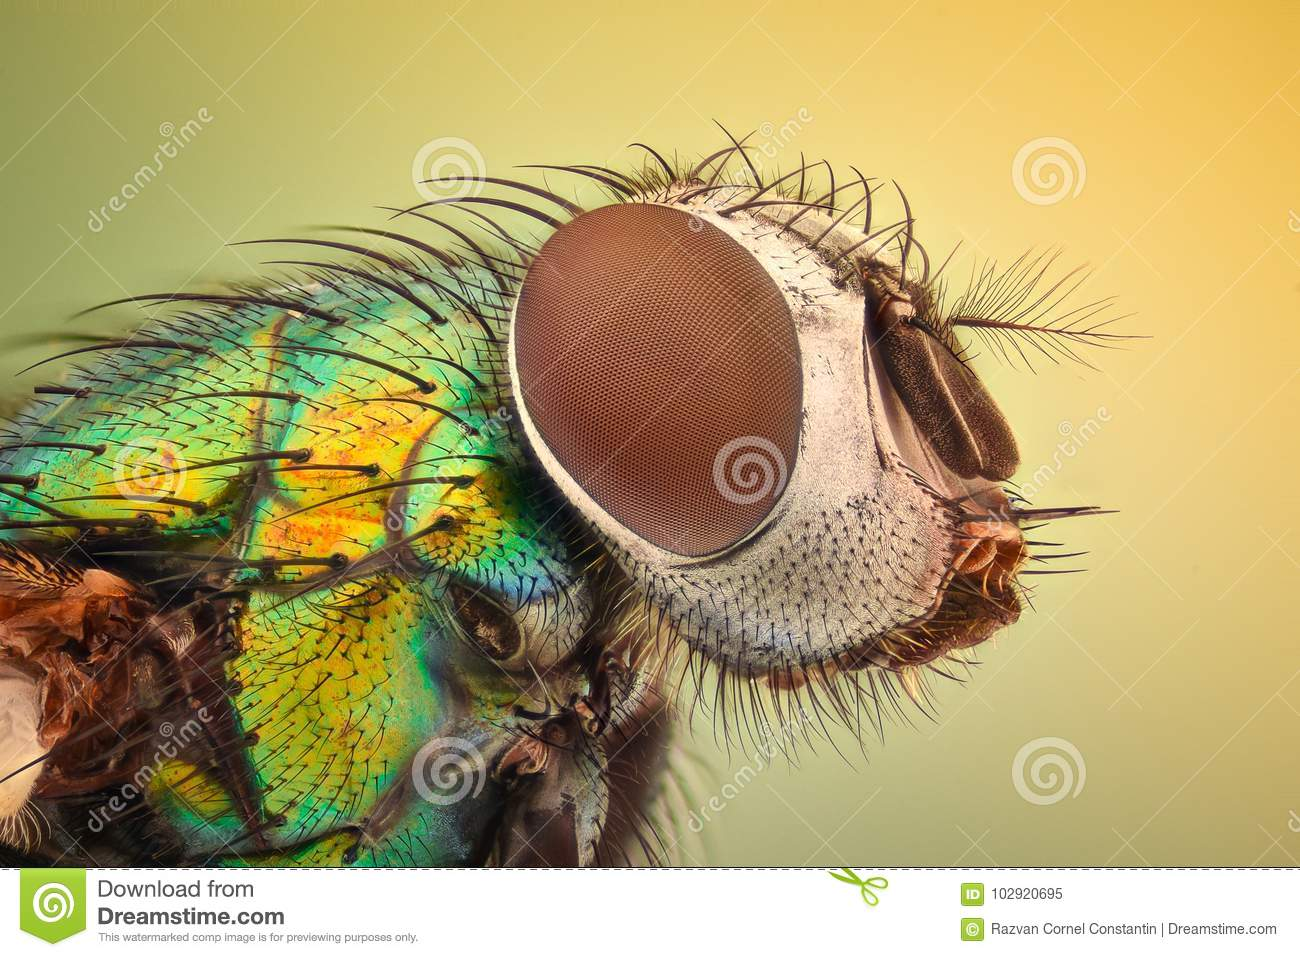 Extreme Magnification - House Fly Stock Image - Image of microscope ...